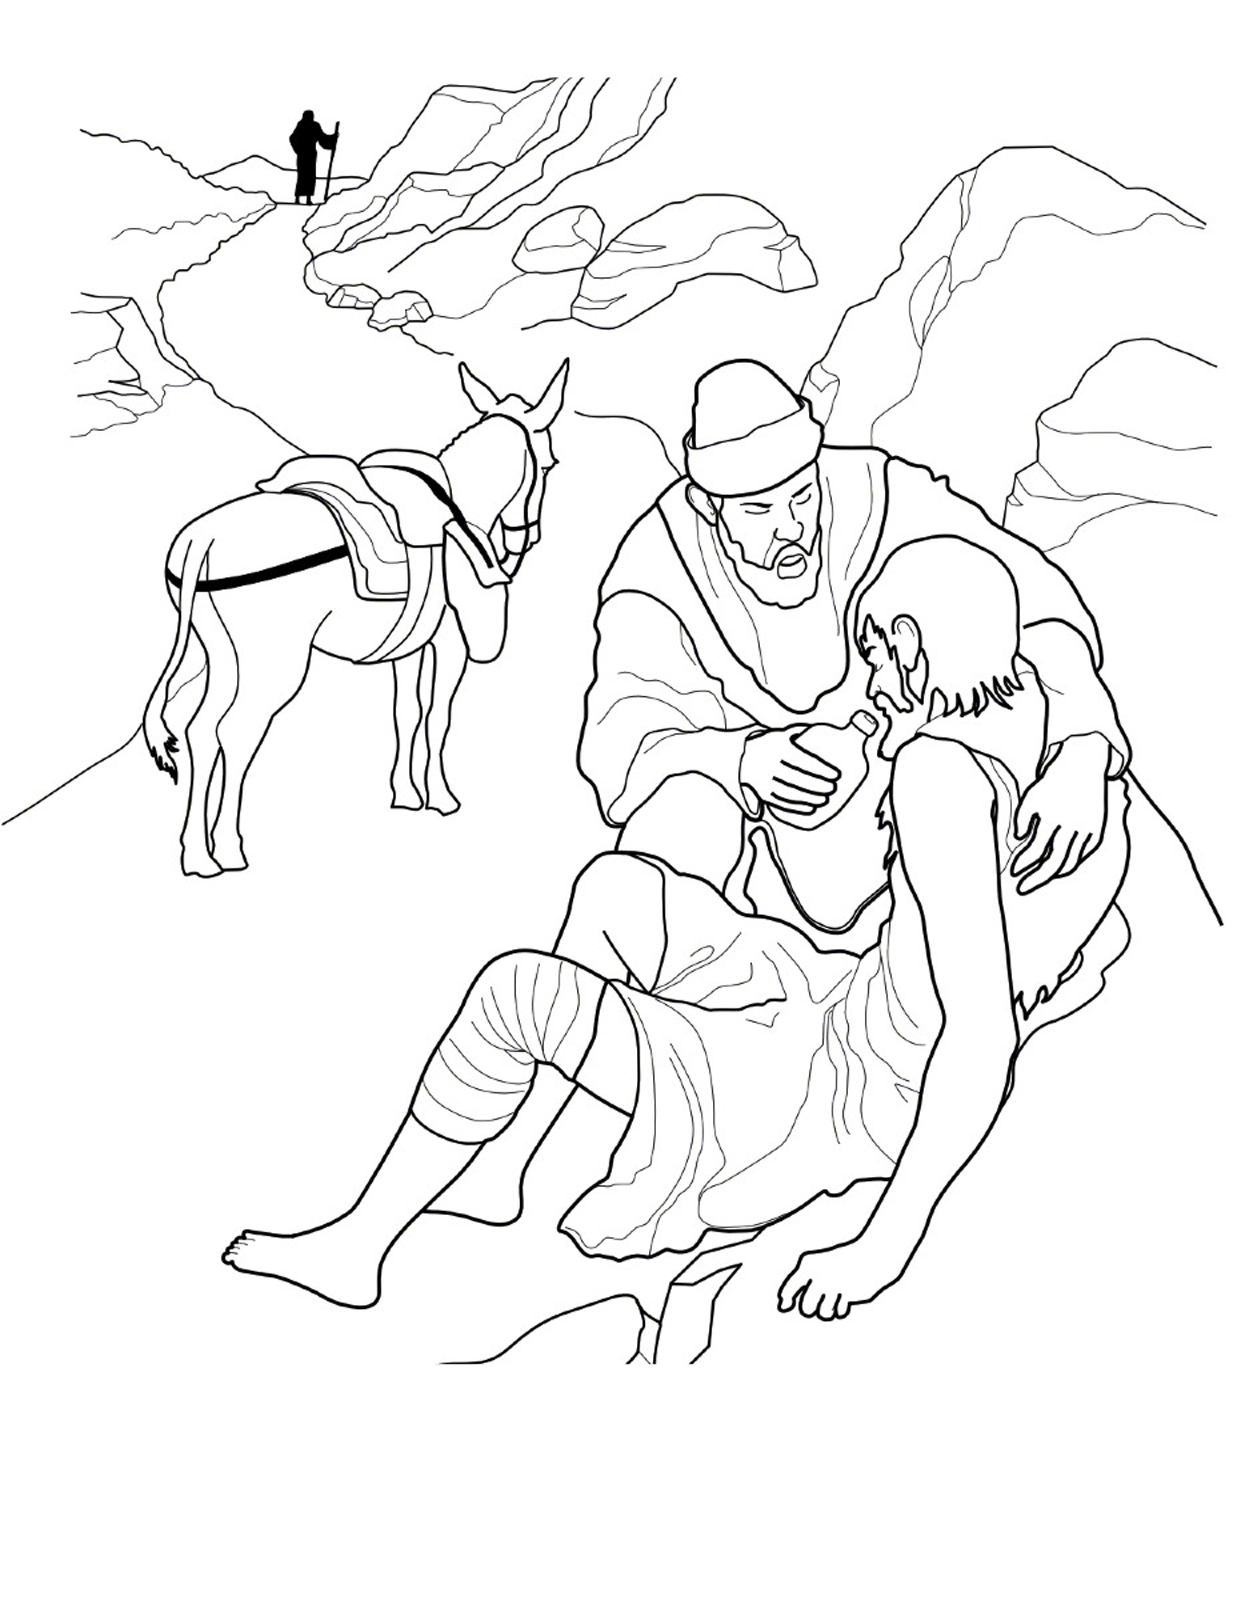 the good samaritan - Good Samaritan Coloring Pages